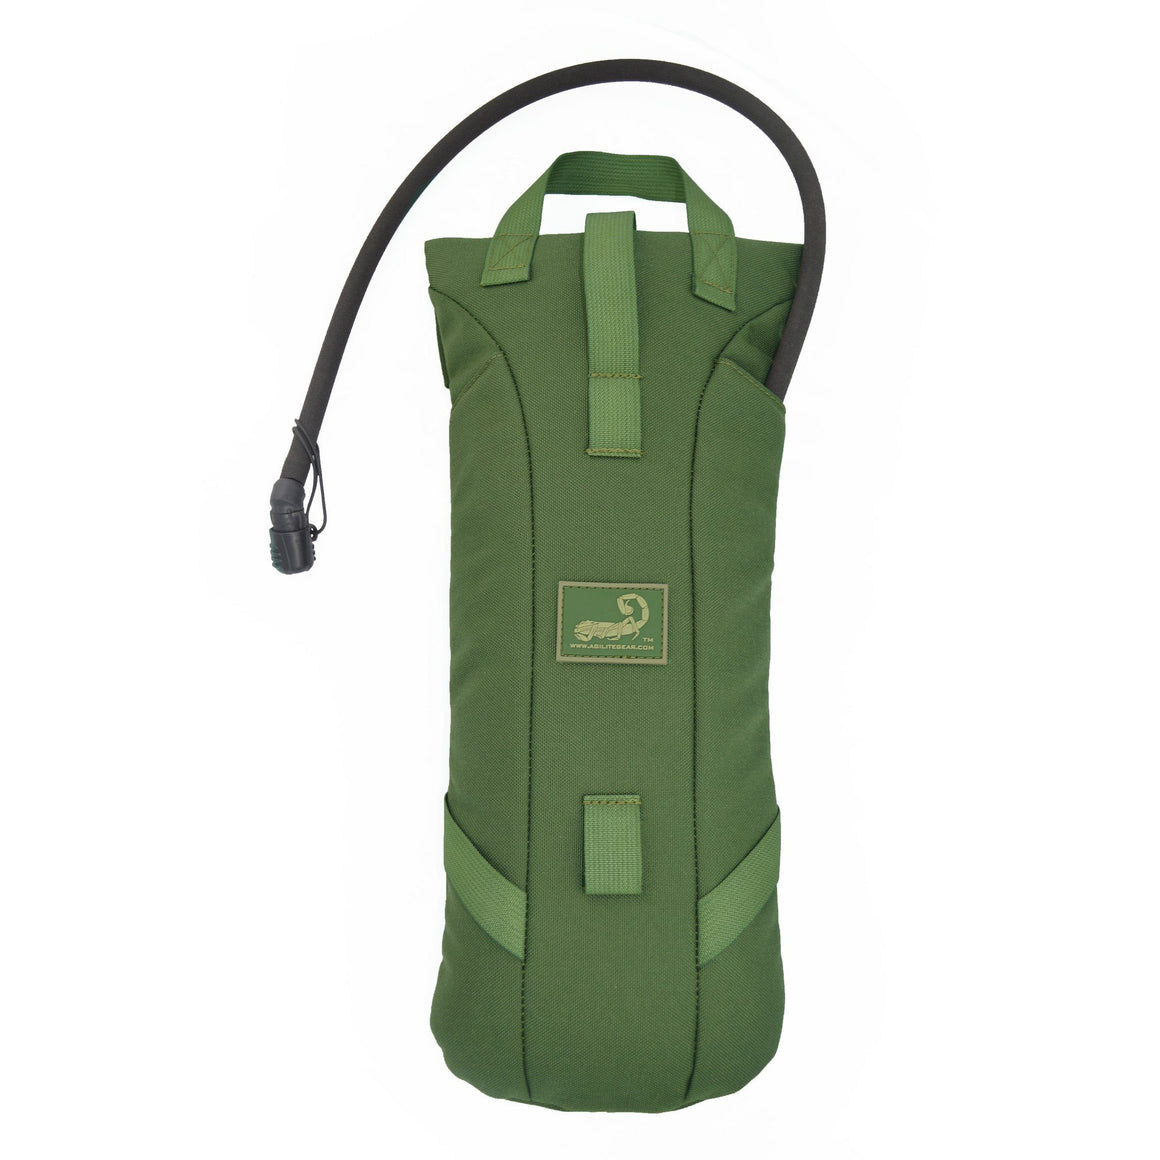 IDF Hydration Pouch Set (9011340812)